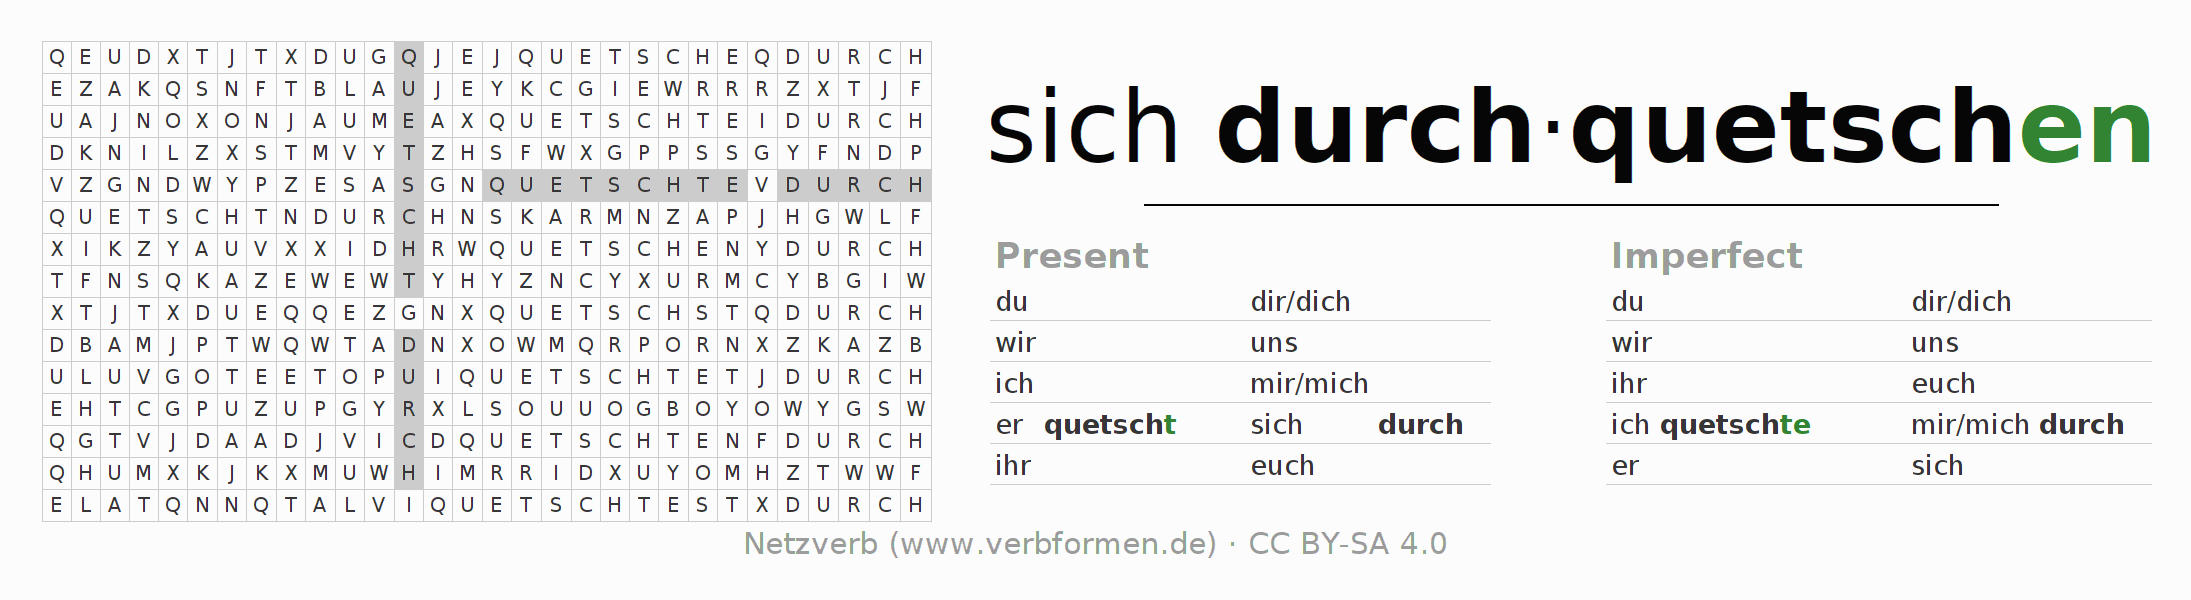 Word search puzzle for the conjugation of the verb sich durchquetschen